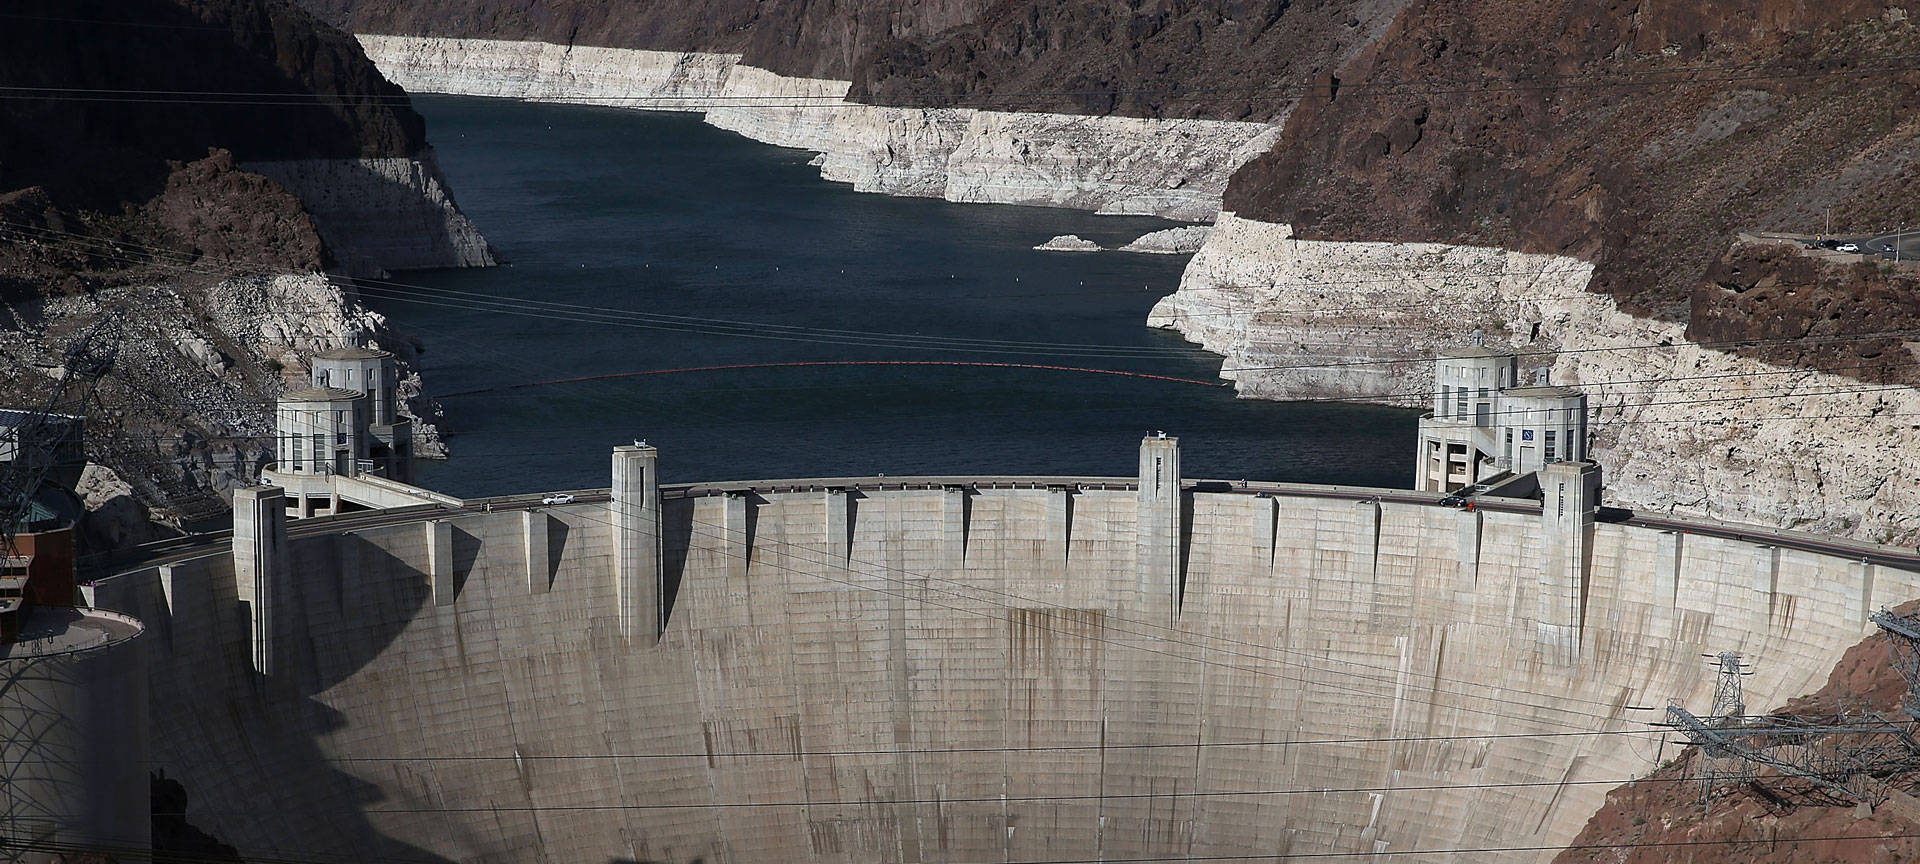 Lake Mead, the largest reservoir on the Colorado River, has hit record lows. Justin Sullivan/Getty Images